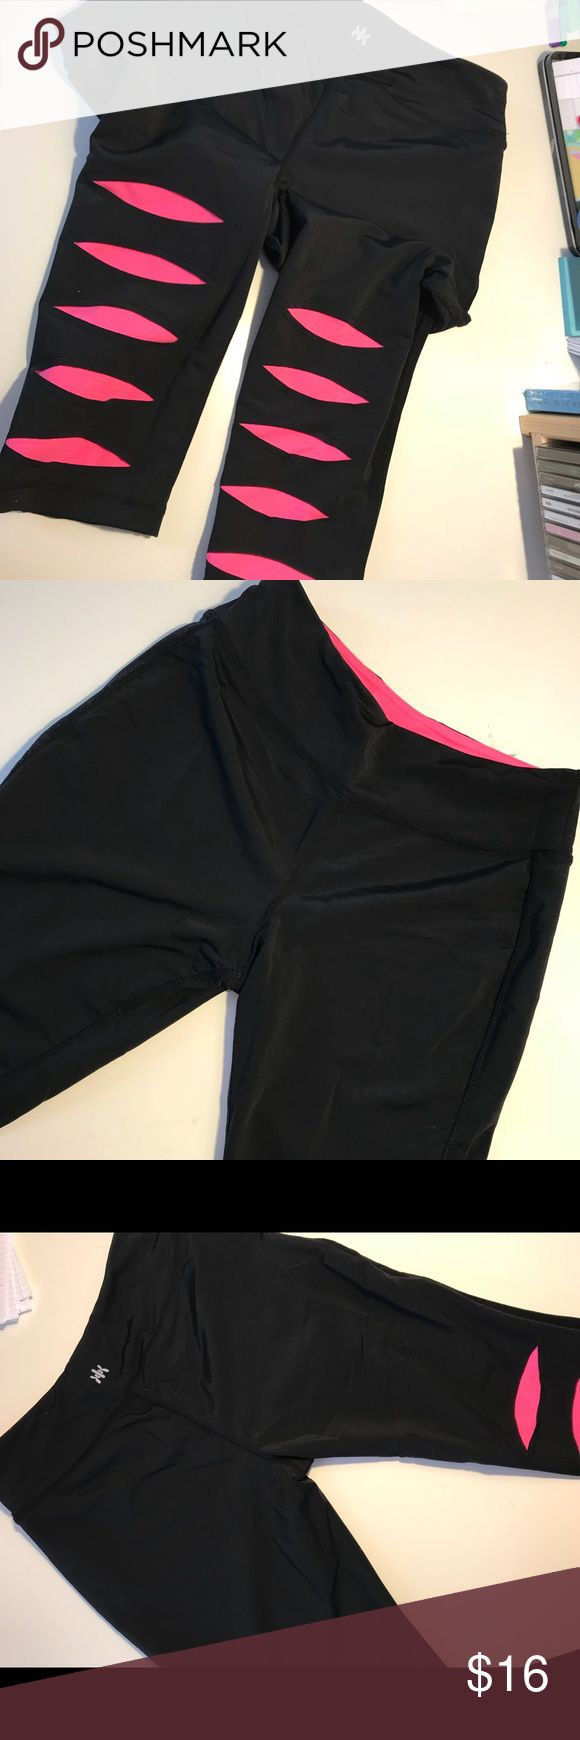 KYODAN LEGGINGS LIKE NEW Comfortable, no show, spandex material, super comfortable nd wonderful to run, lounge, workout in or stay in all day!!   Runs true to size calf length\ above the ankle/ below the knee crop leggings Kyodan Pants Leggings